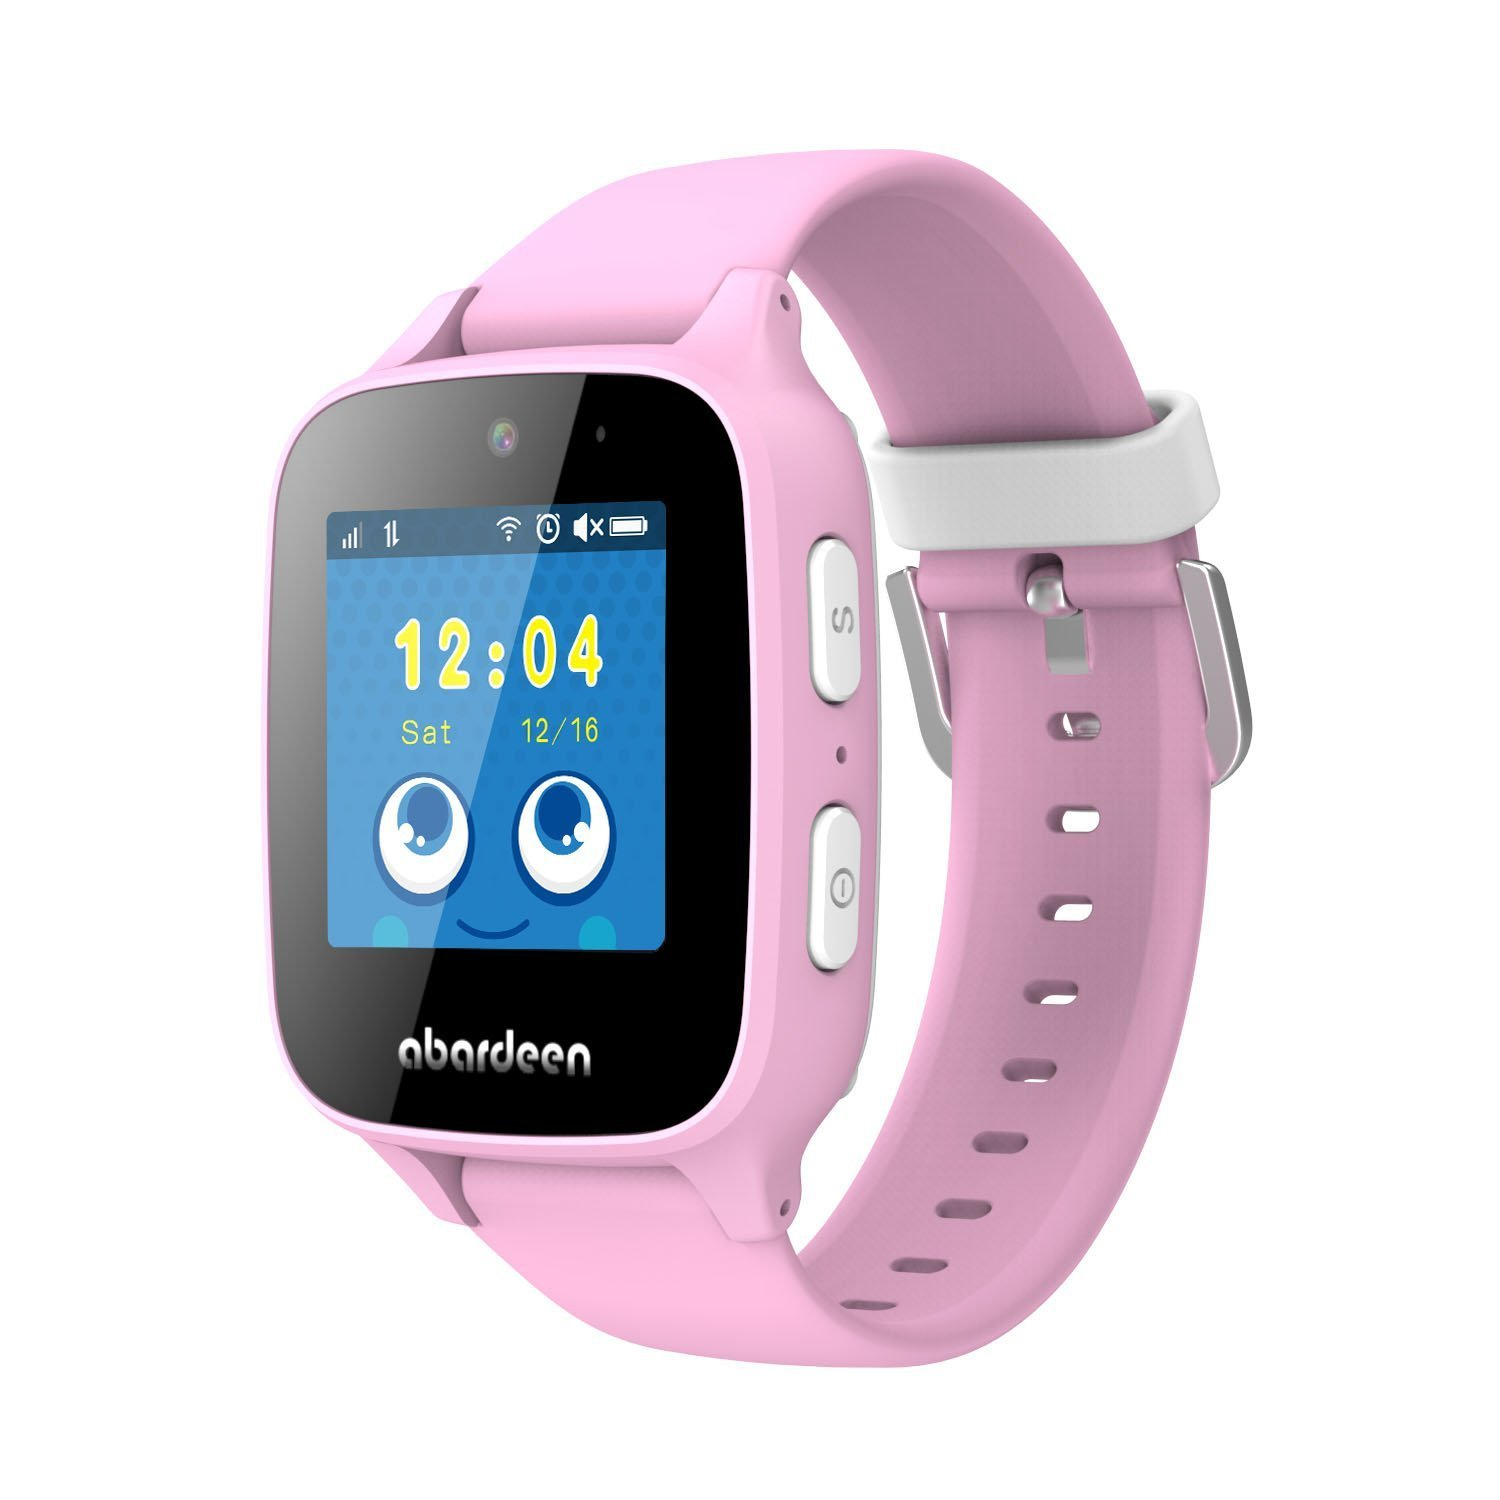 android wrist smart mate watch samsung mobile watches iphone bluetooth ios phone for waterproof